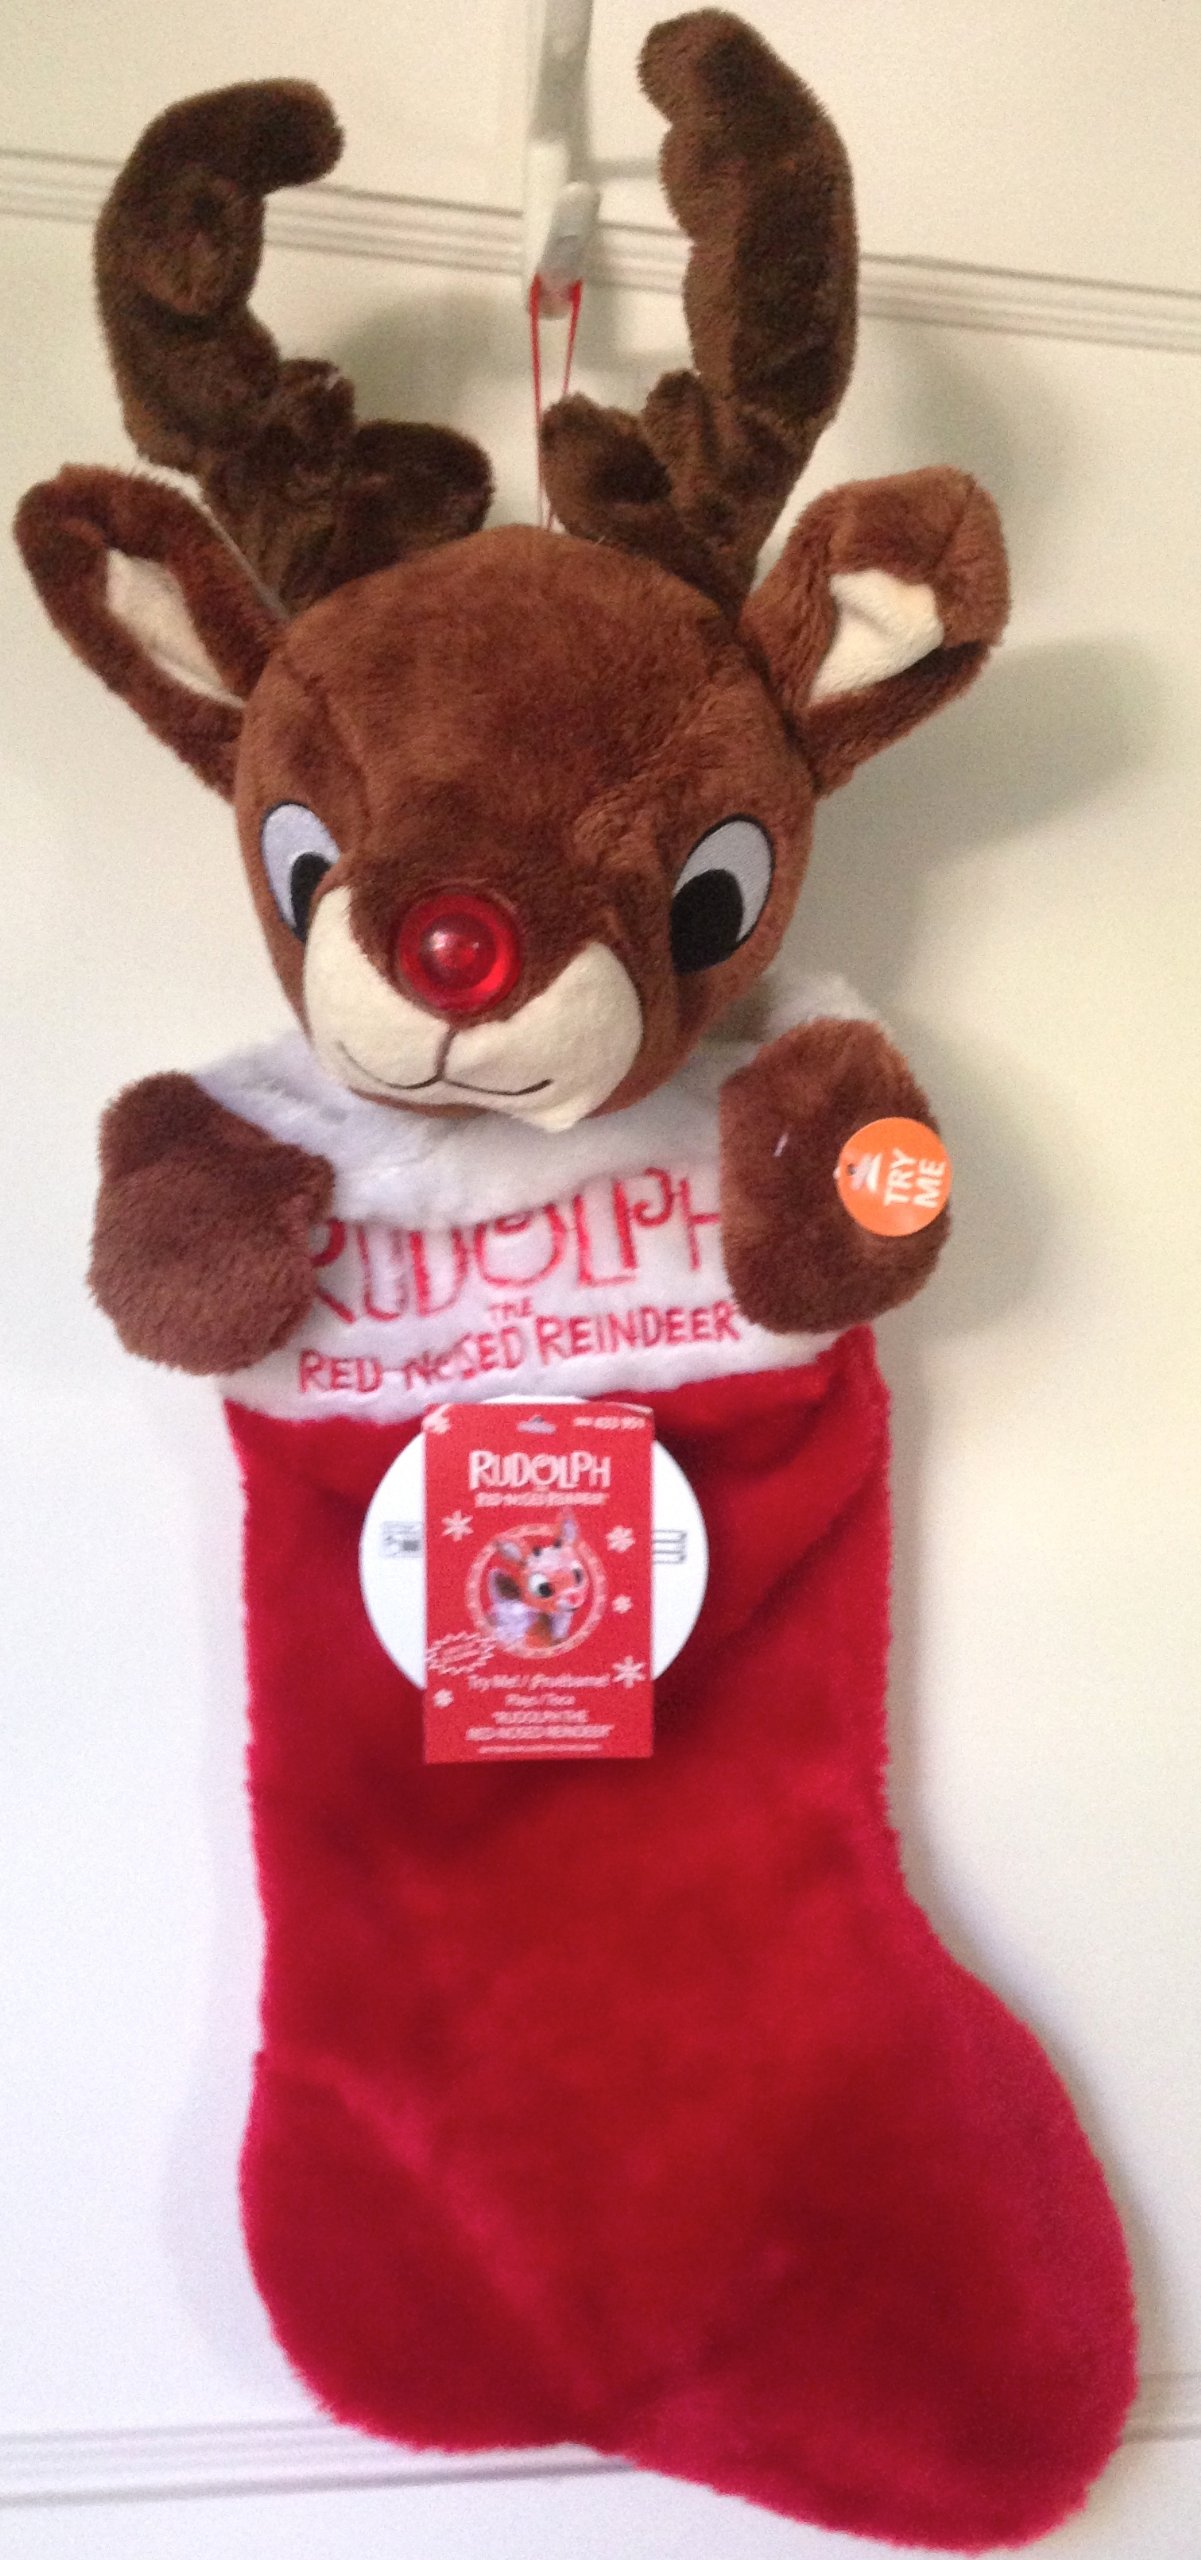 Rudolph The Red Nosed Reindeer Light Up Rudolph Plush Doll Plays Music New